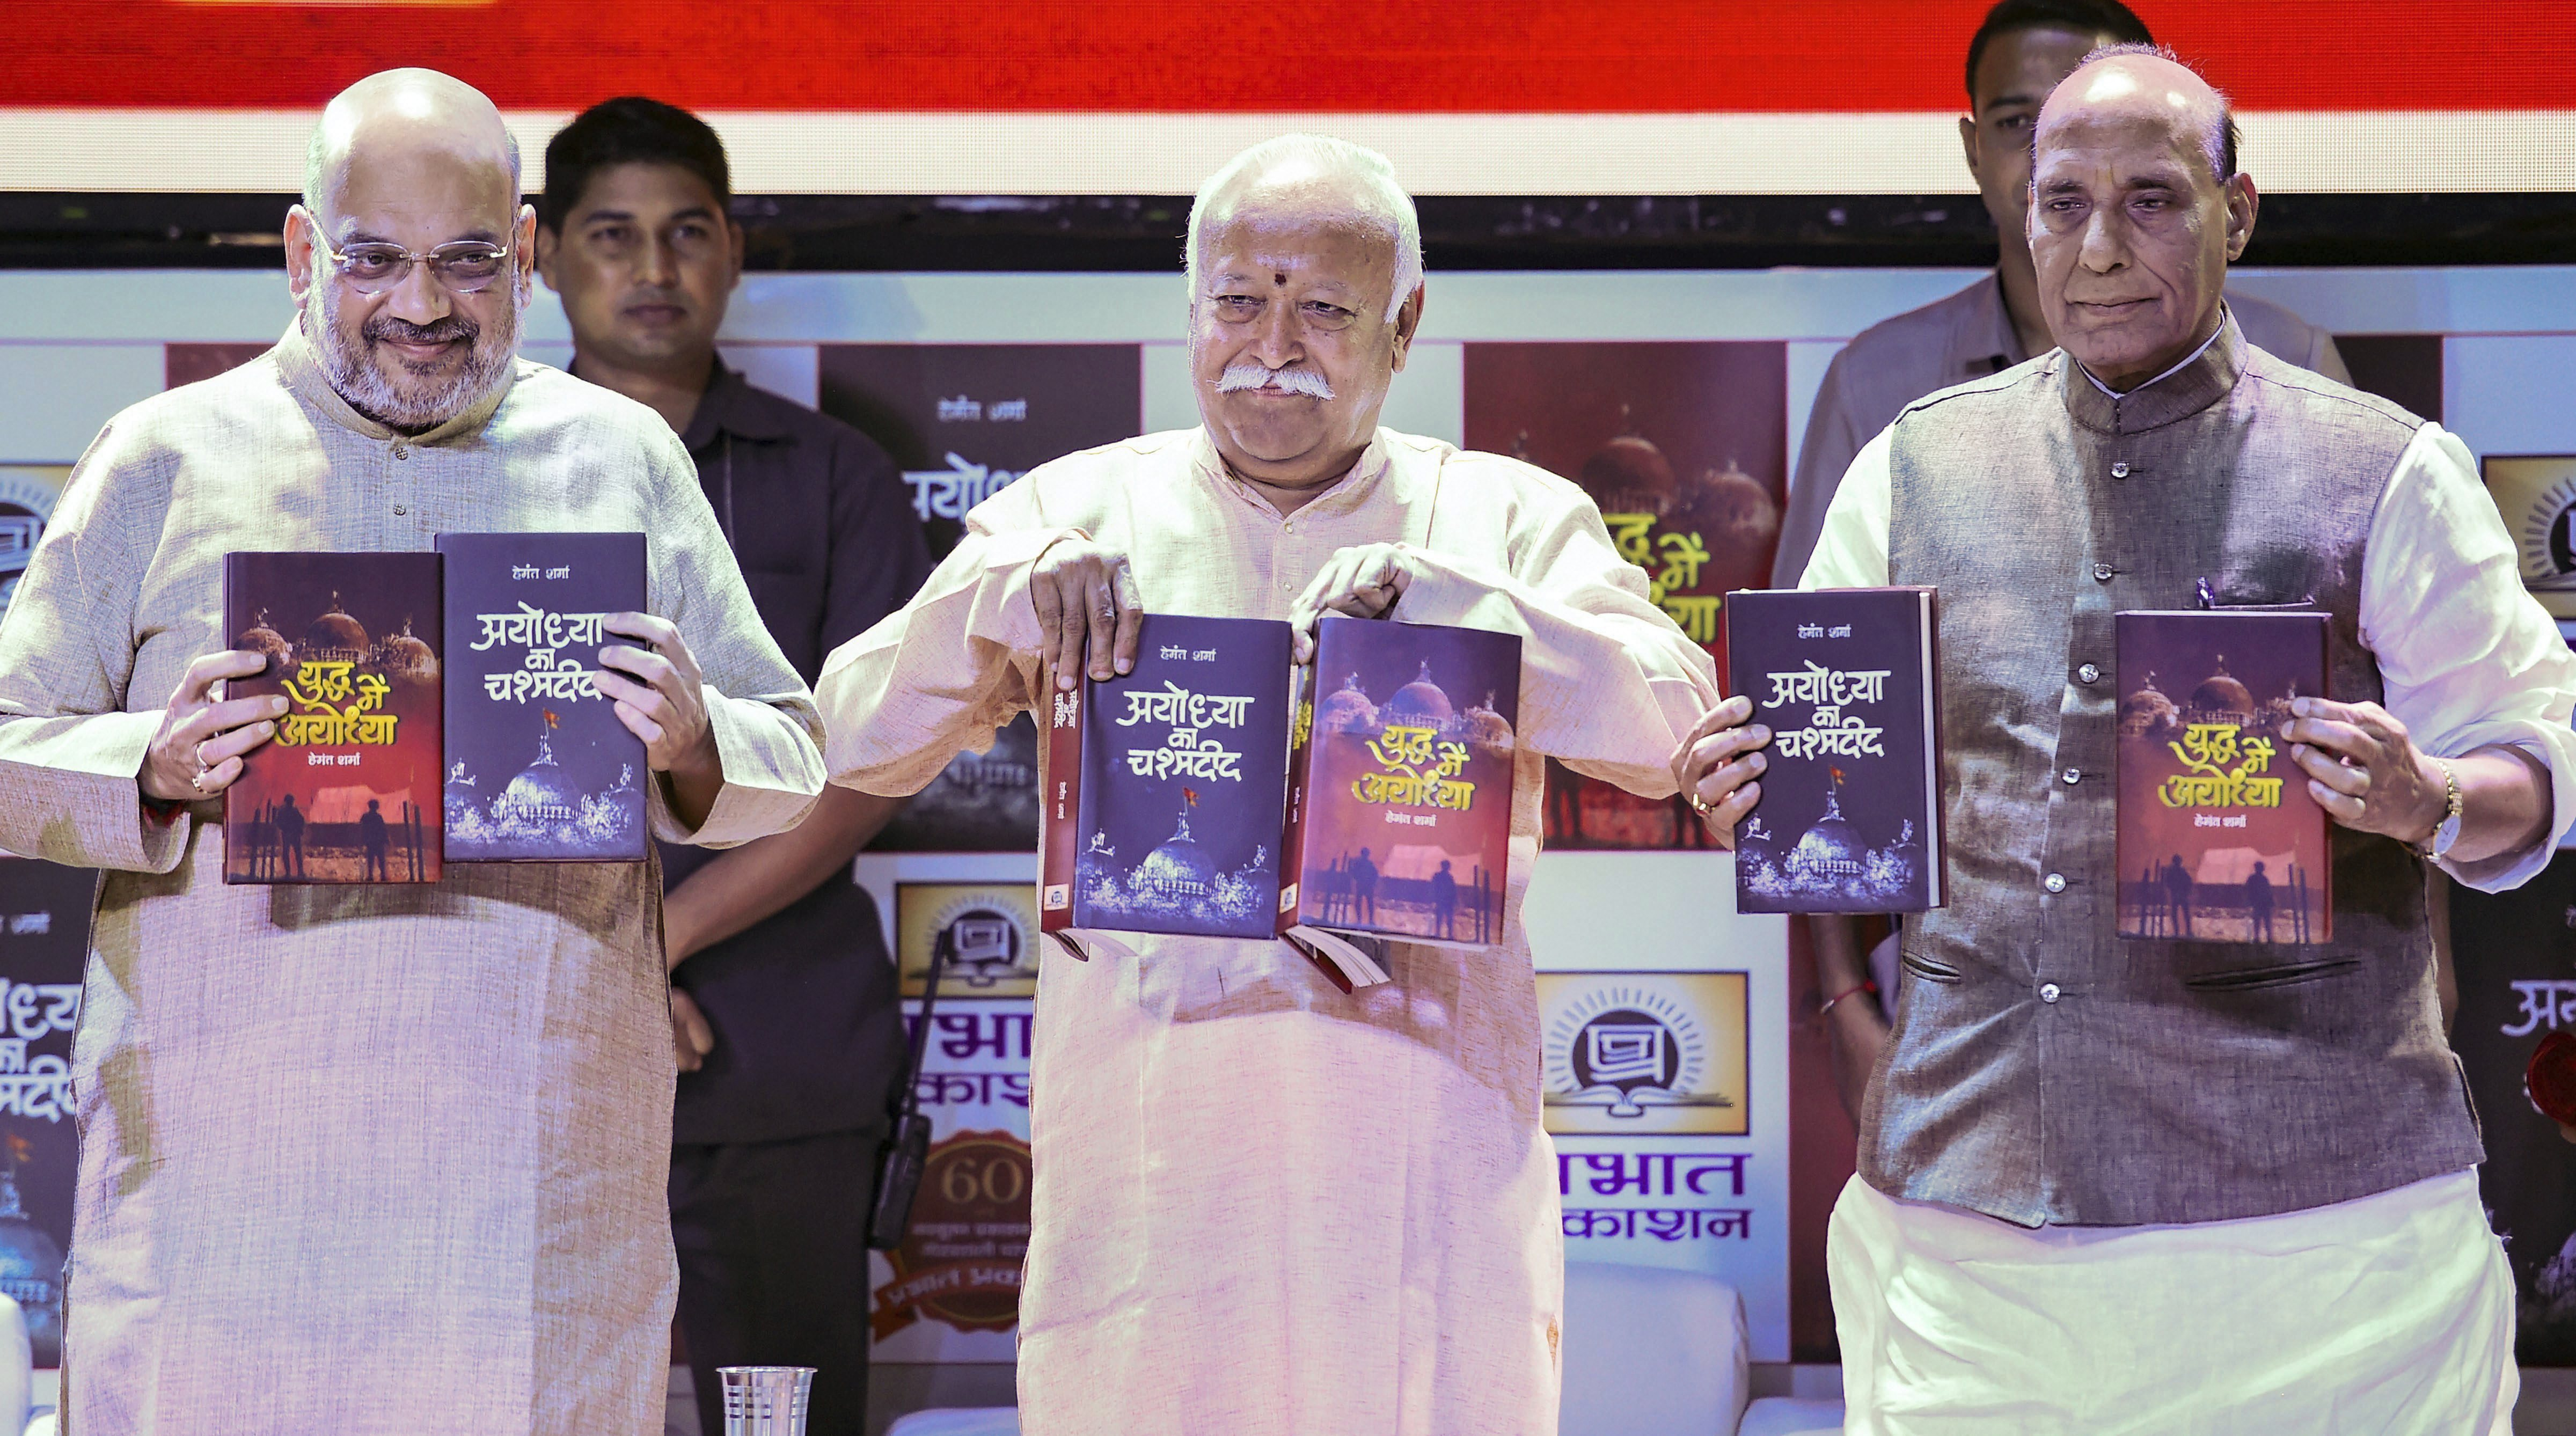 Union Home Minister Rajnath Singh, BJP National President Amit Shah and RSS chief Mohan Bhagwat release the books